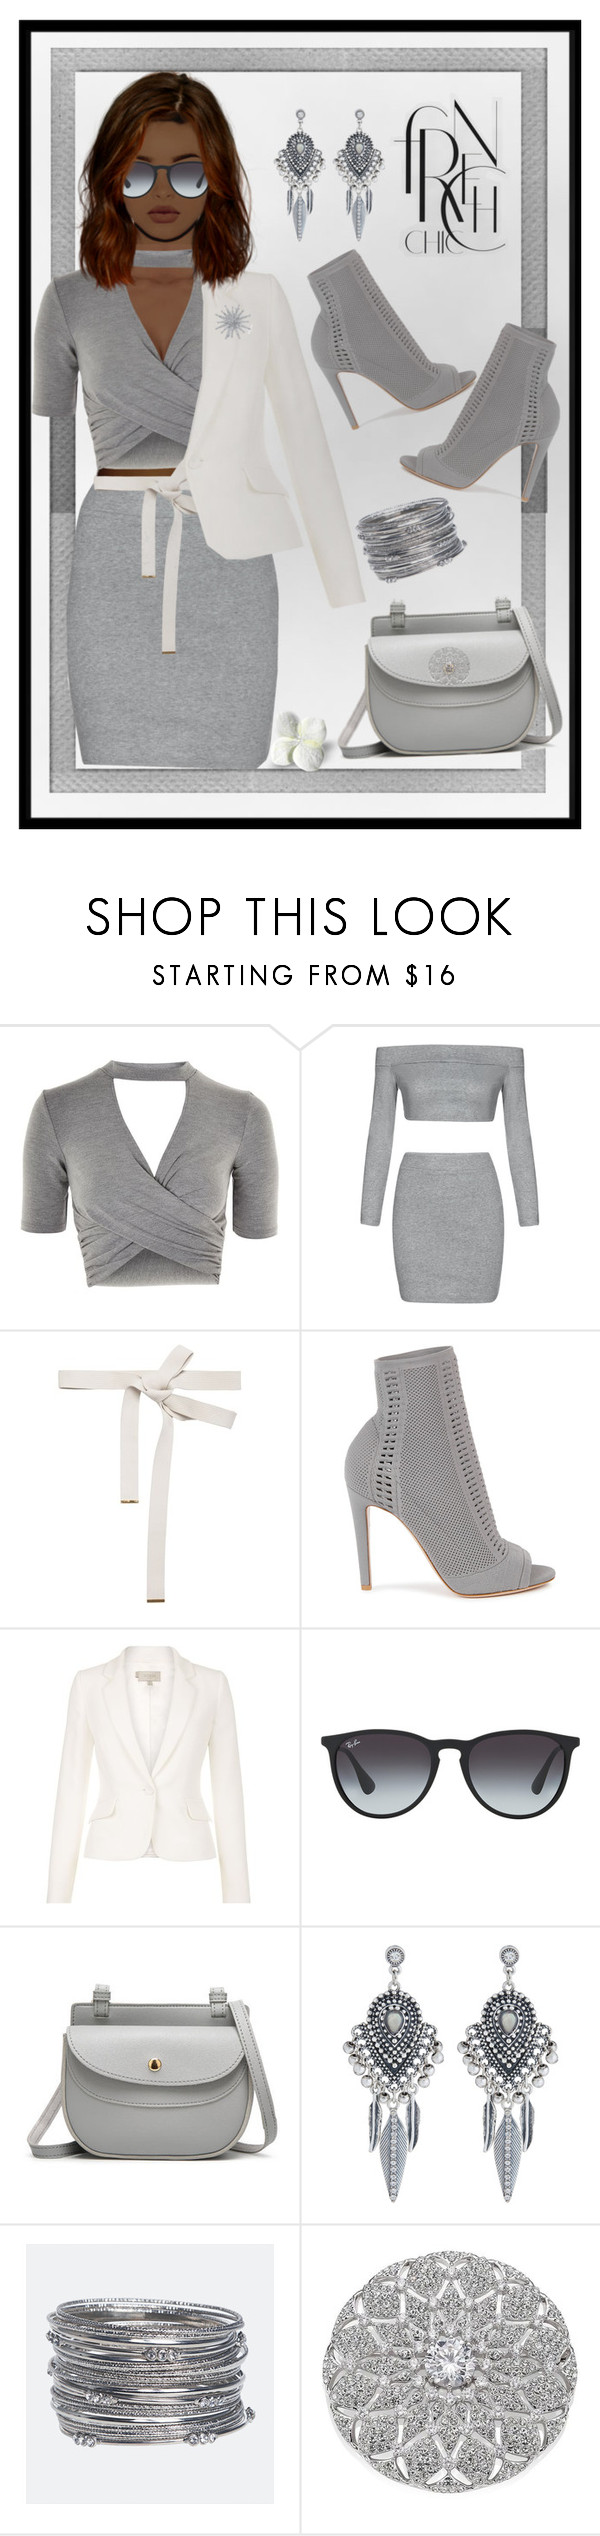 """""""#fashionistachic"""" by liligwada ❤ liked on Polyvore featuring Polaroid, Topshop, Marni, Gianvito Rossi, Ray-Ban, Accessorize, Avenue, Adriana Orsini and Bling Jewelry"""